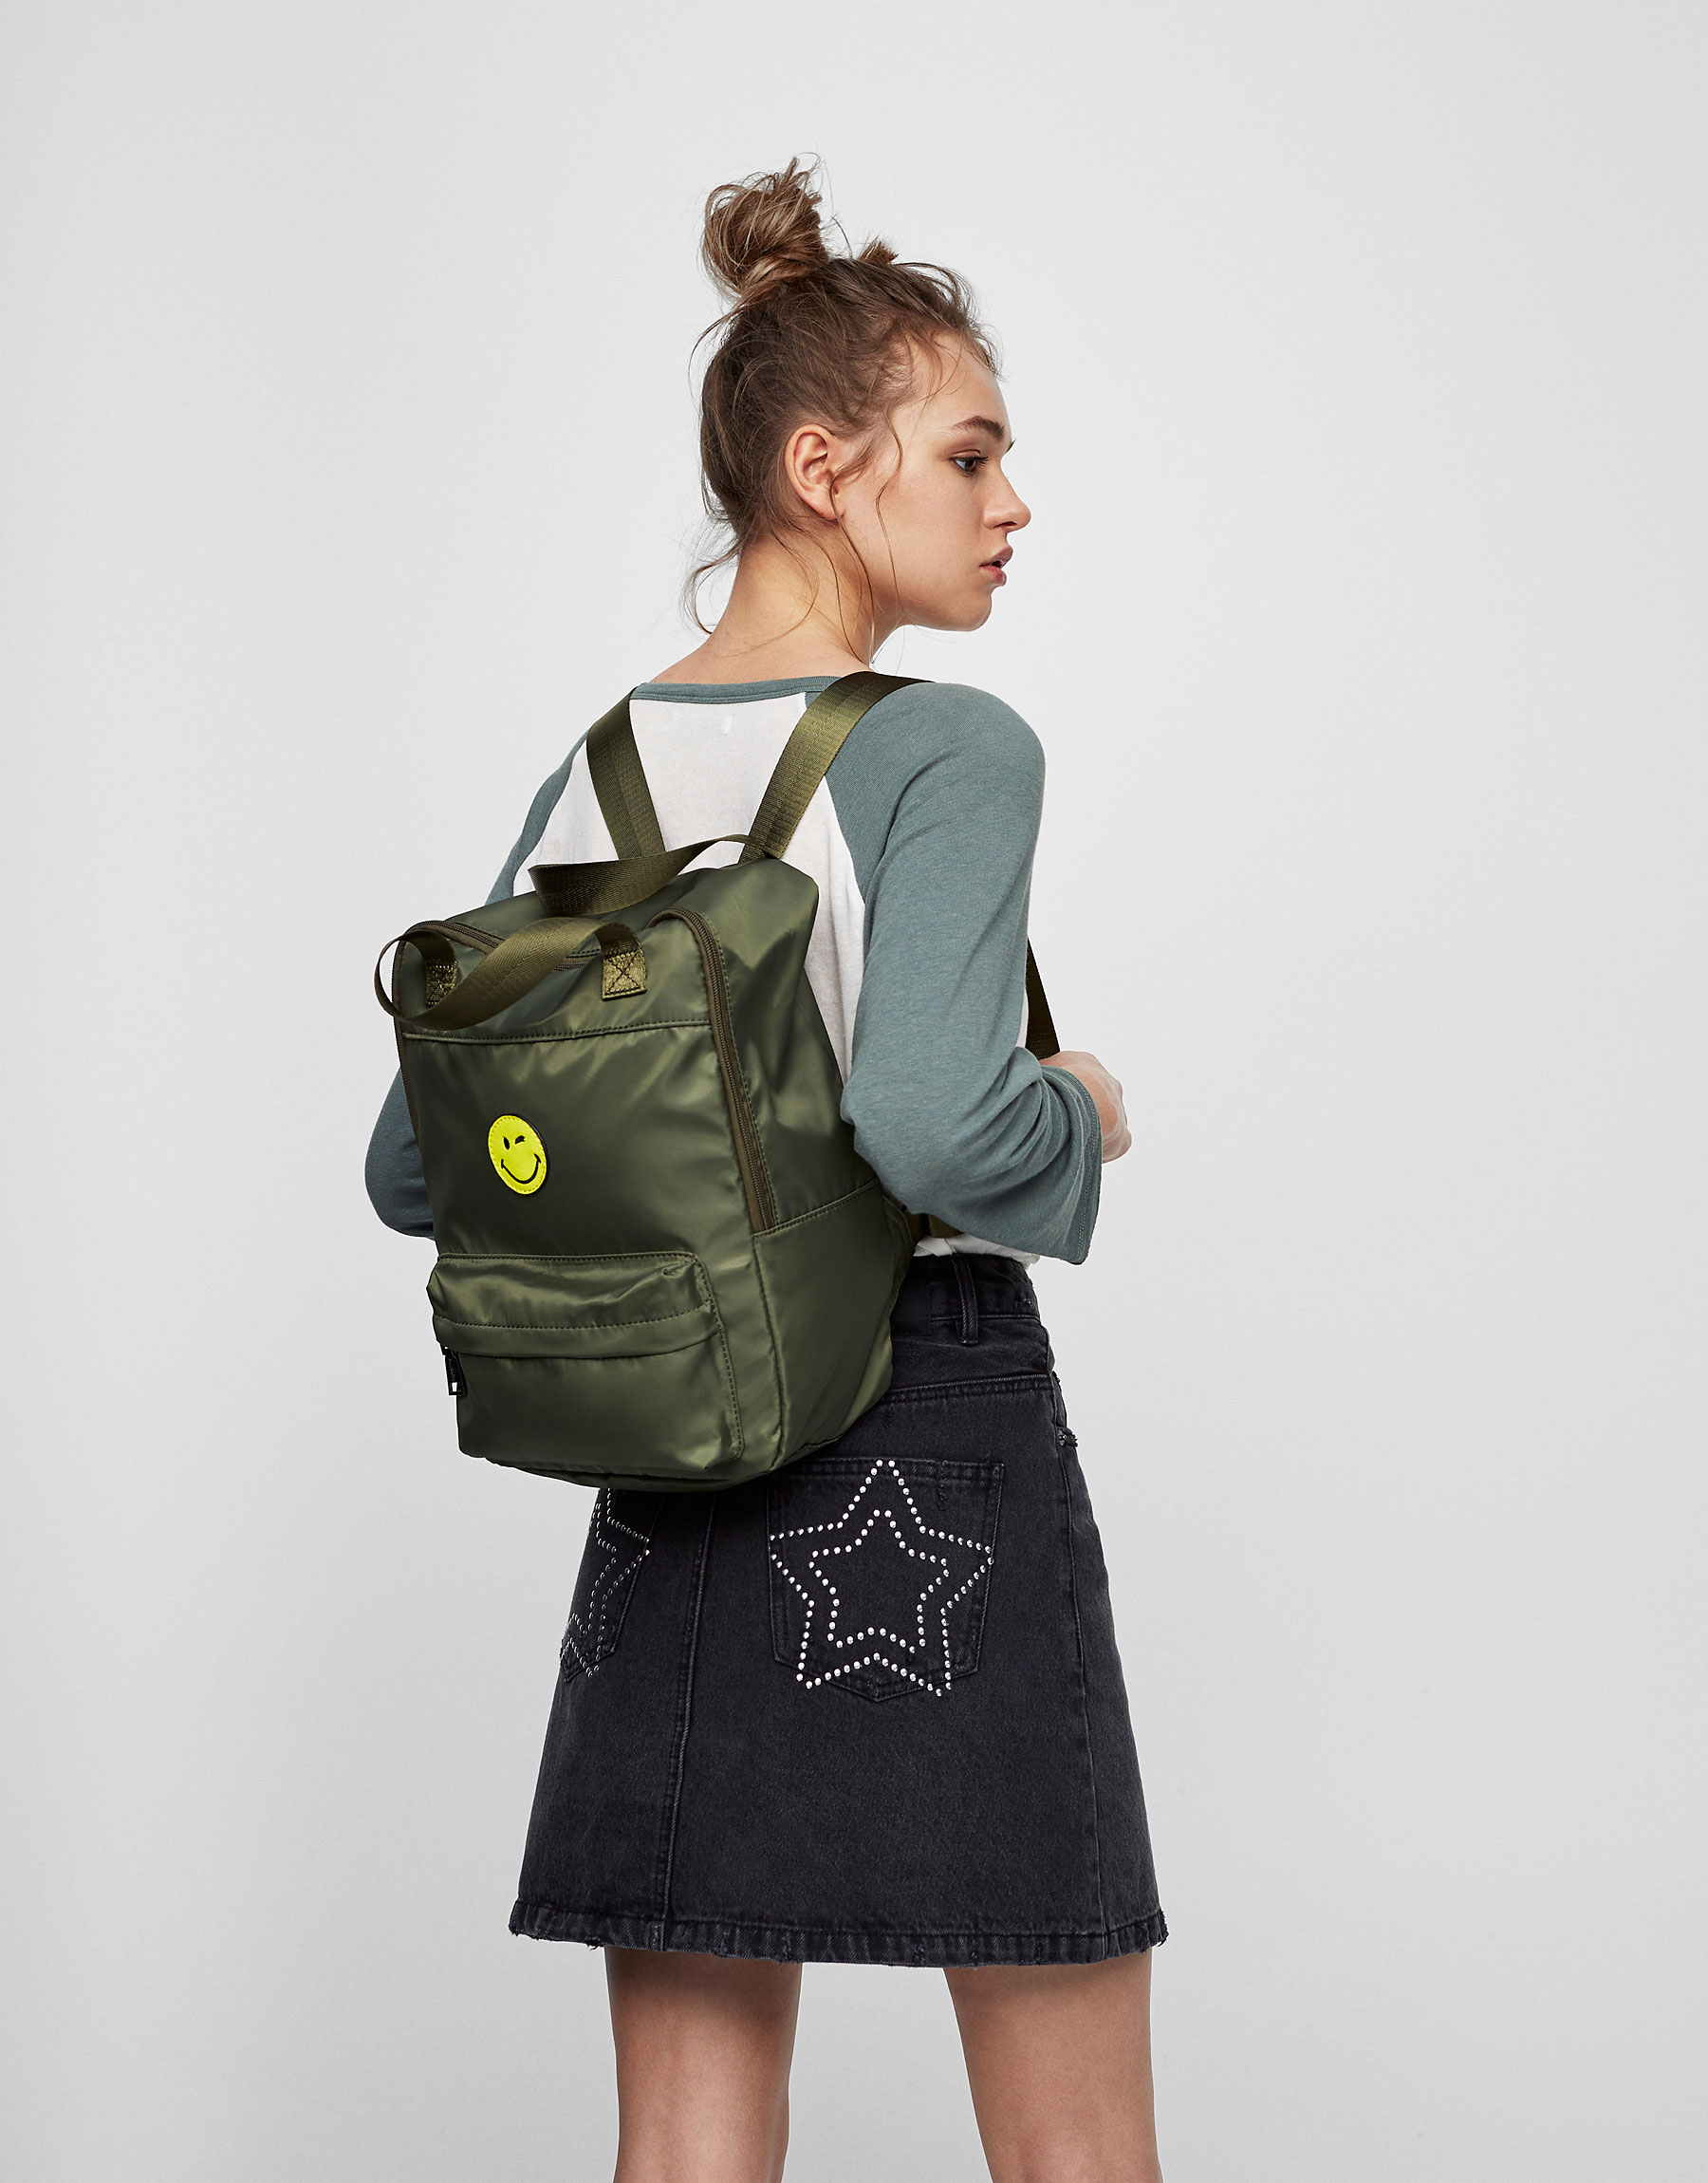 Green fabric Smiley Face backpack